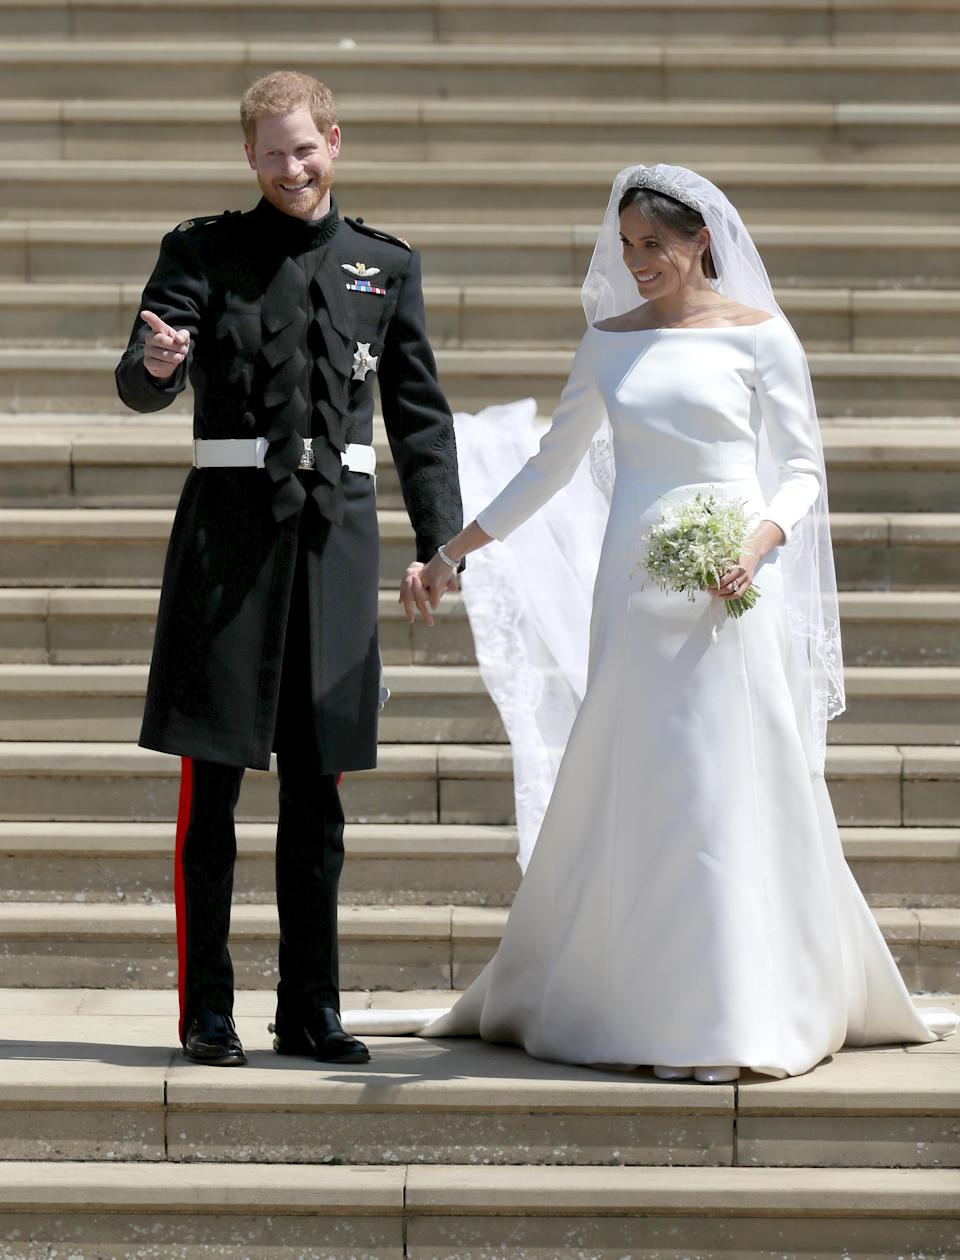 Meghan's main wedding dress, designed by Clare Waight Keller of Givenchy. (Photo: PA)